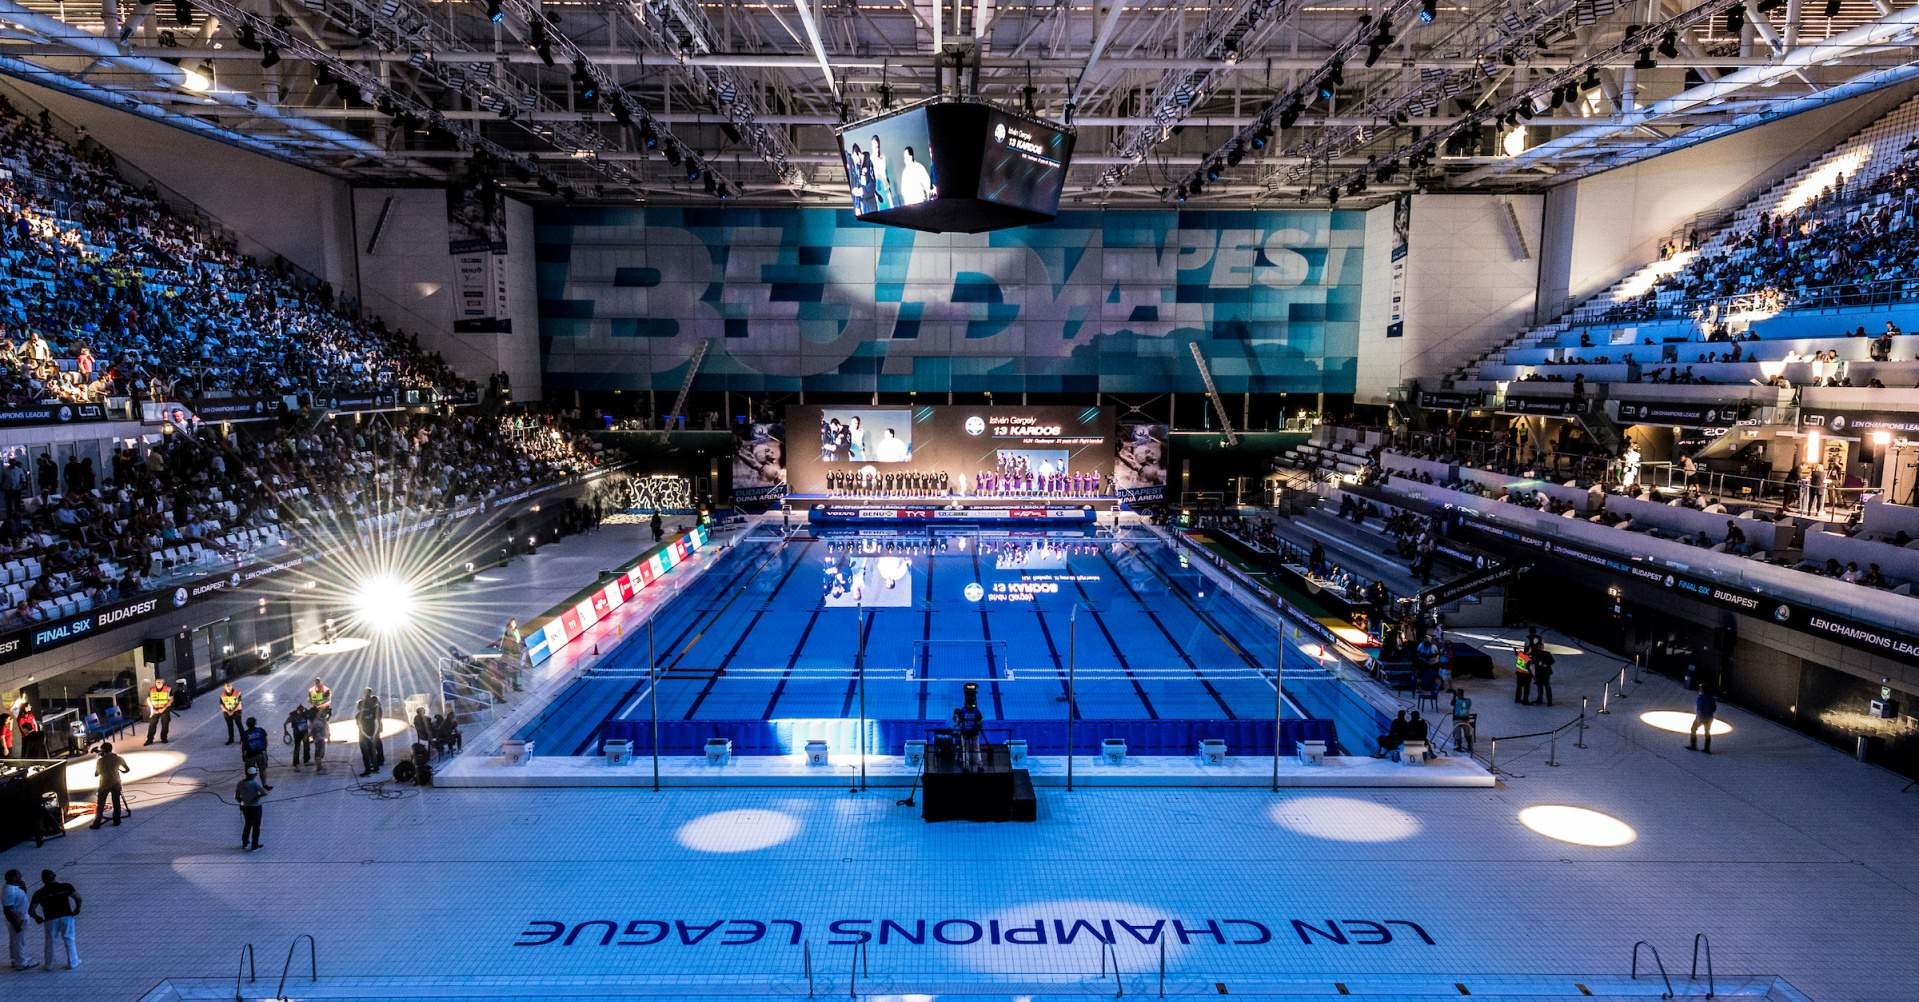 FINA satisfied with preparations for 2017 World Aquatics Championships